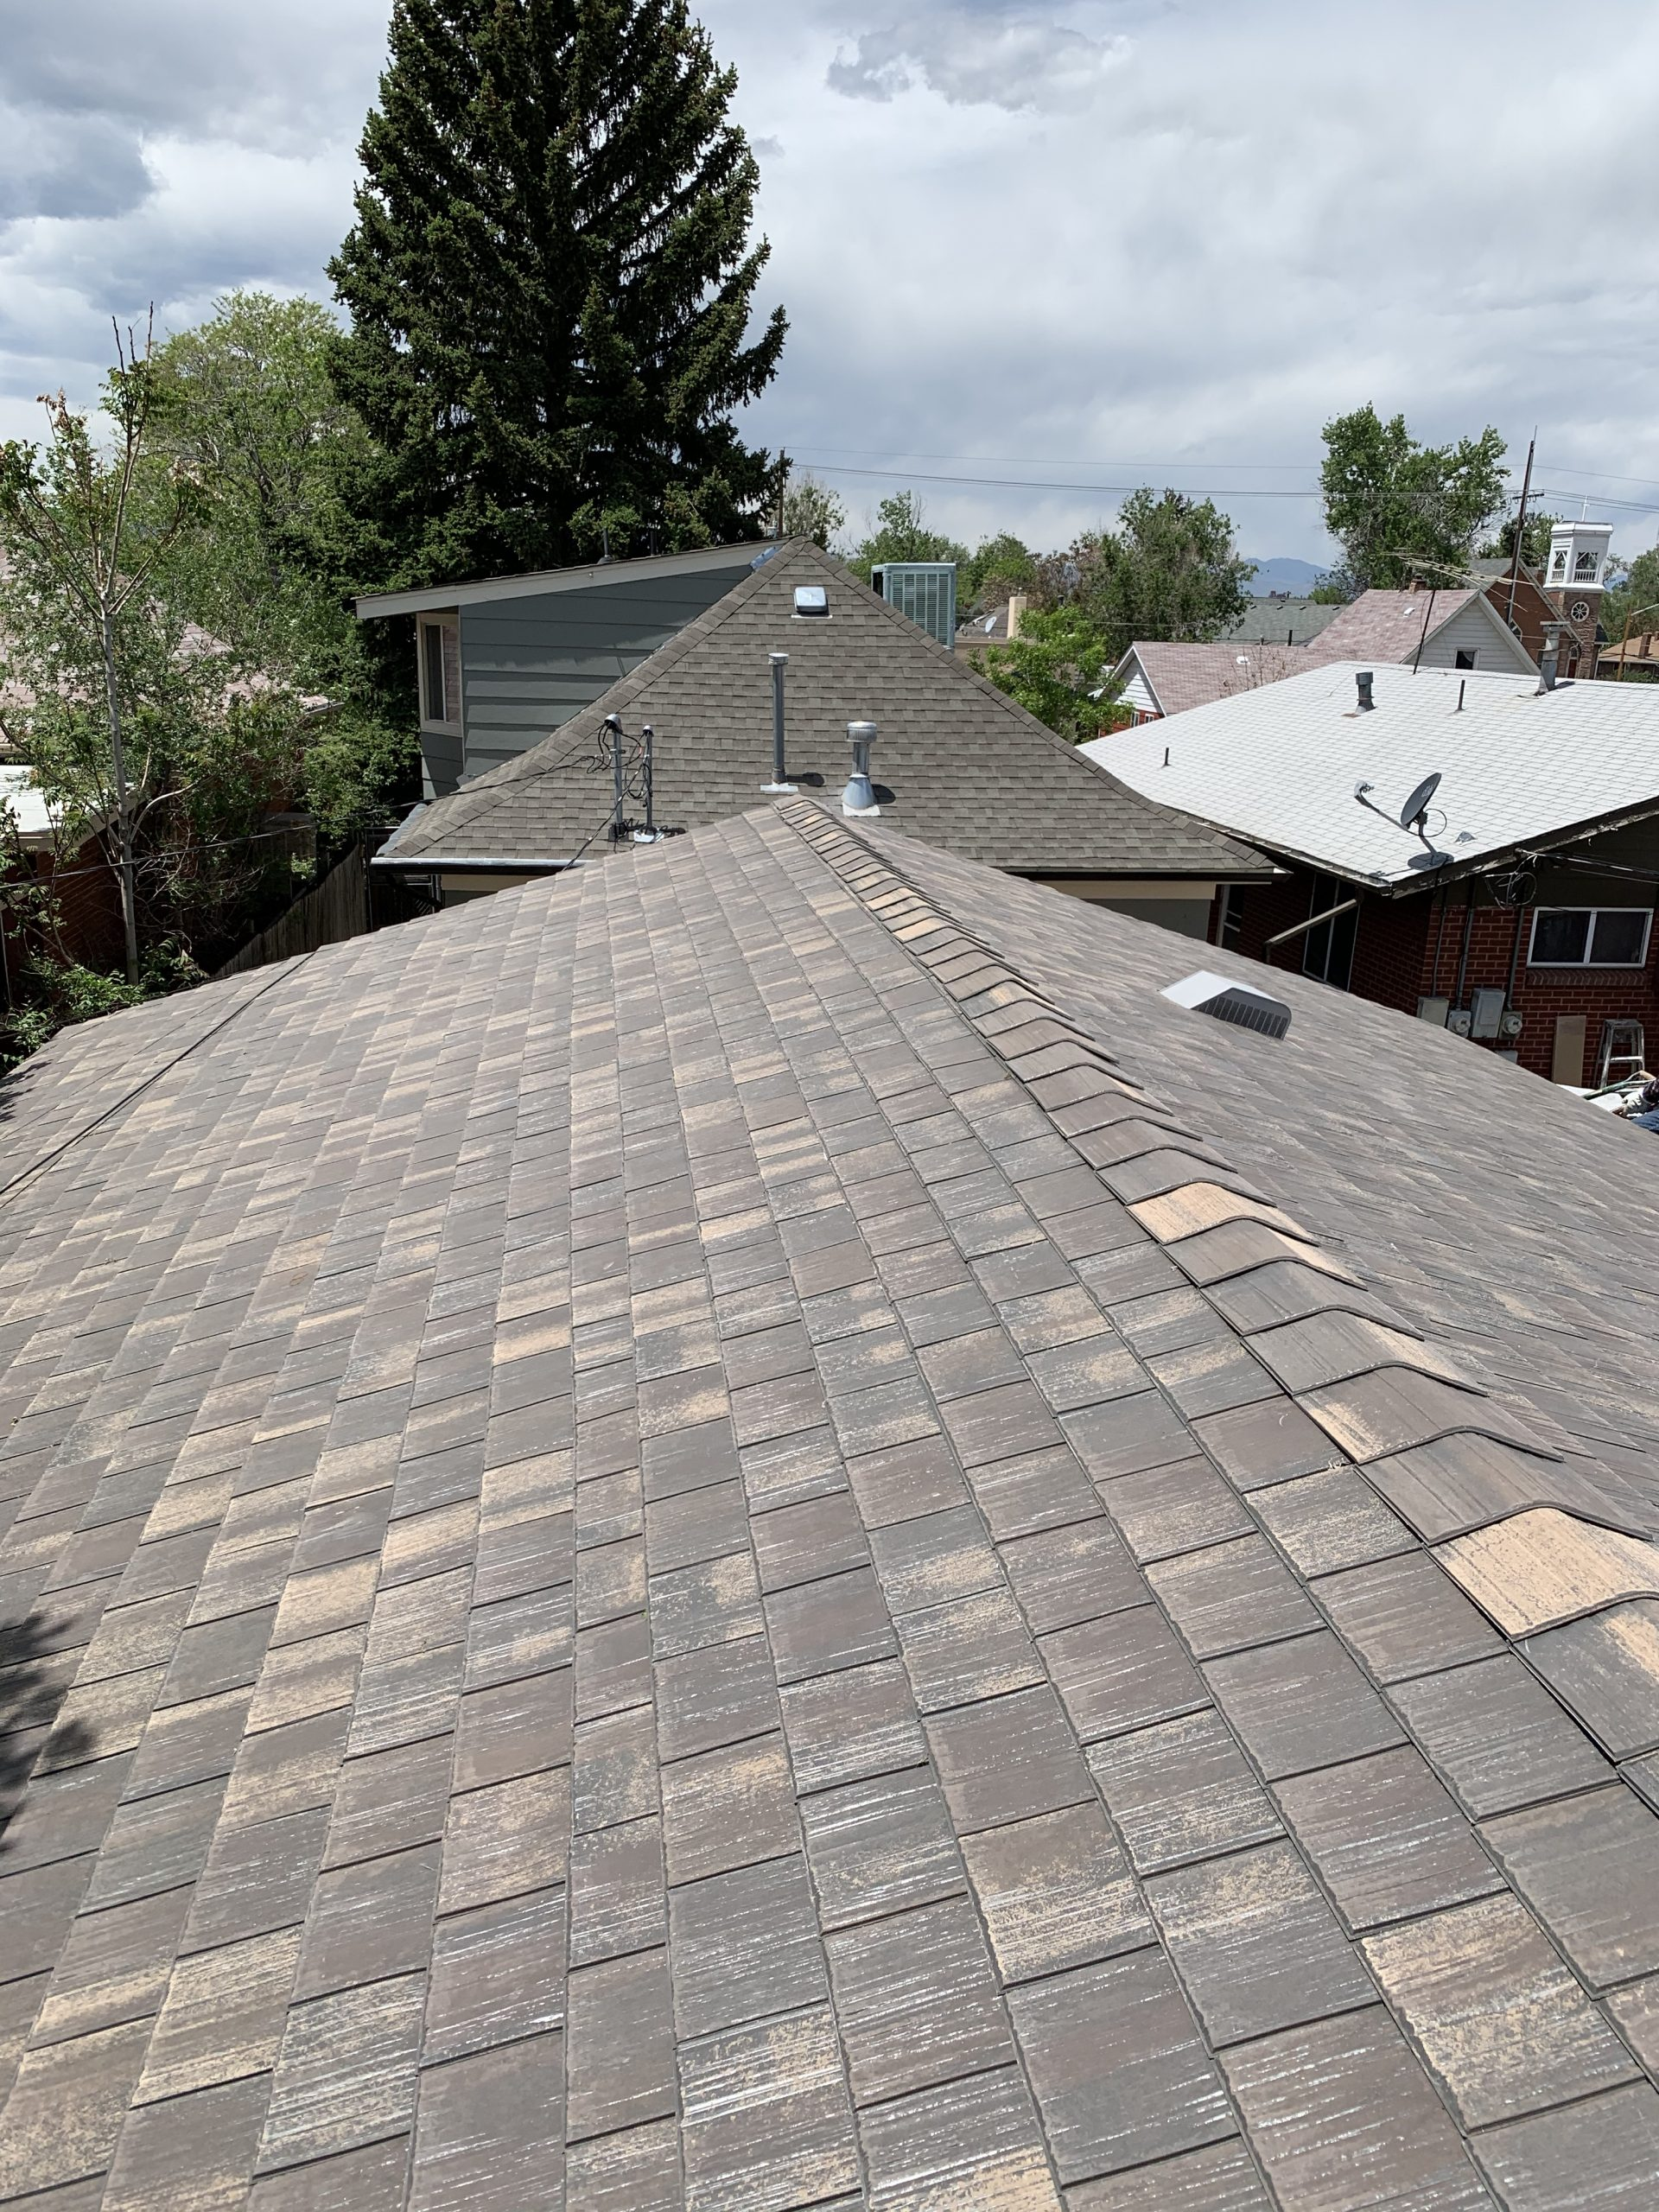 , Residential Roofers, NWR